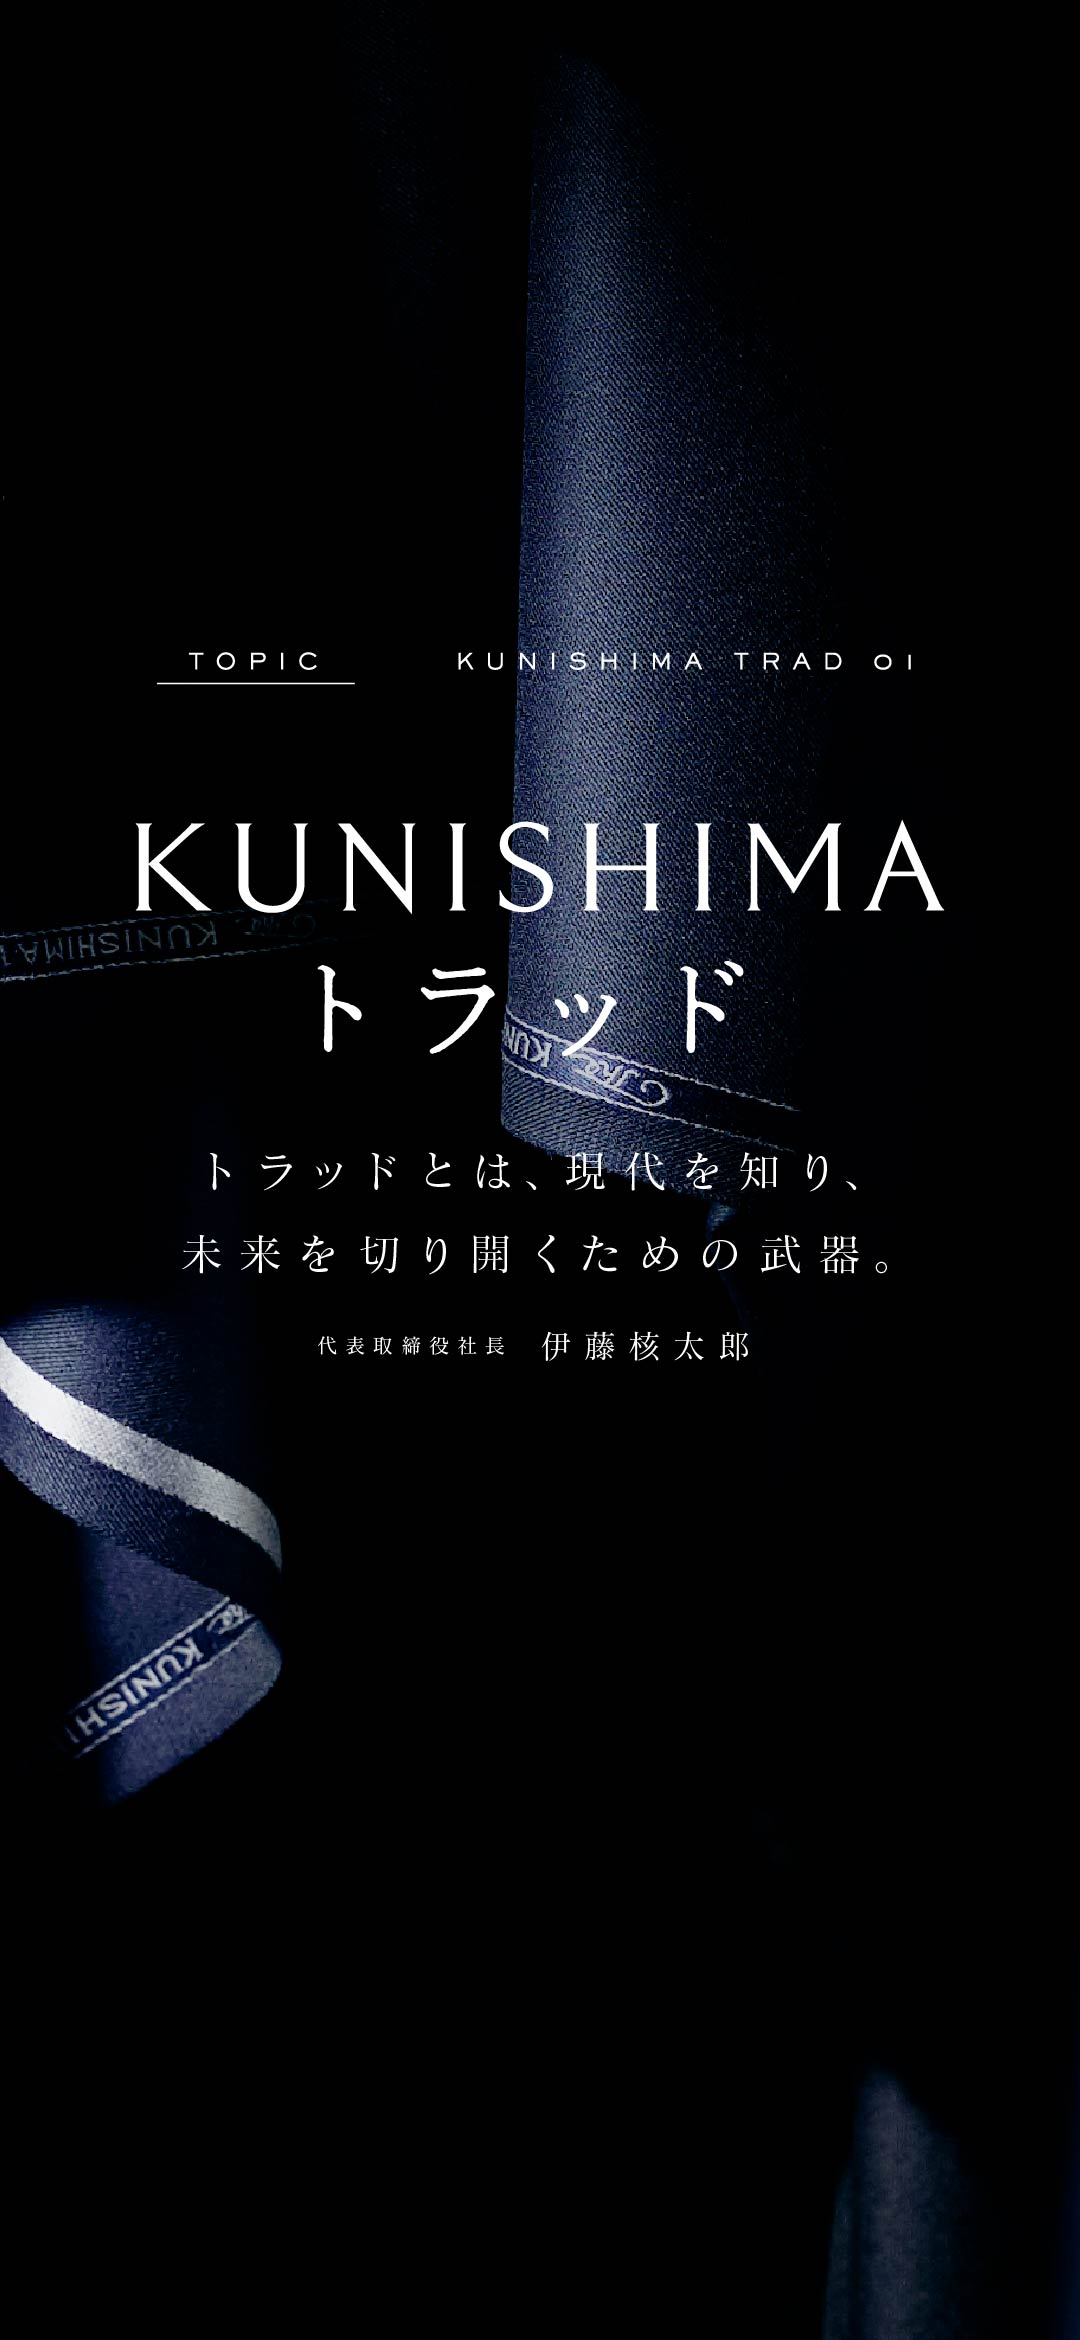 TOPIC KUNISHIMAトラッド 01